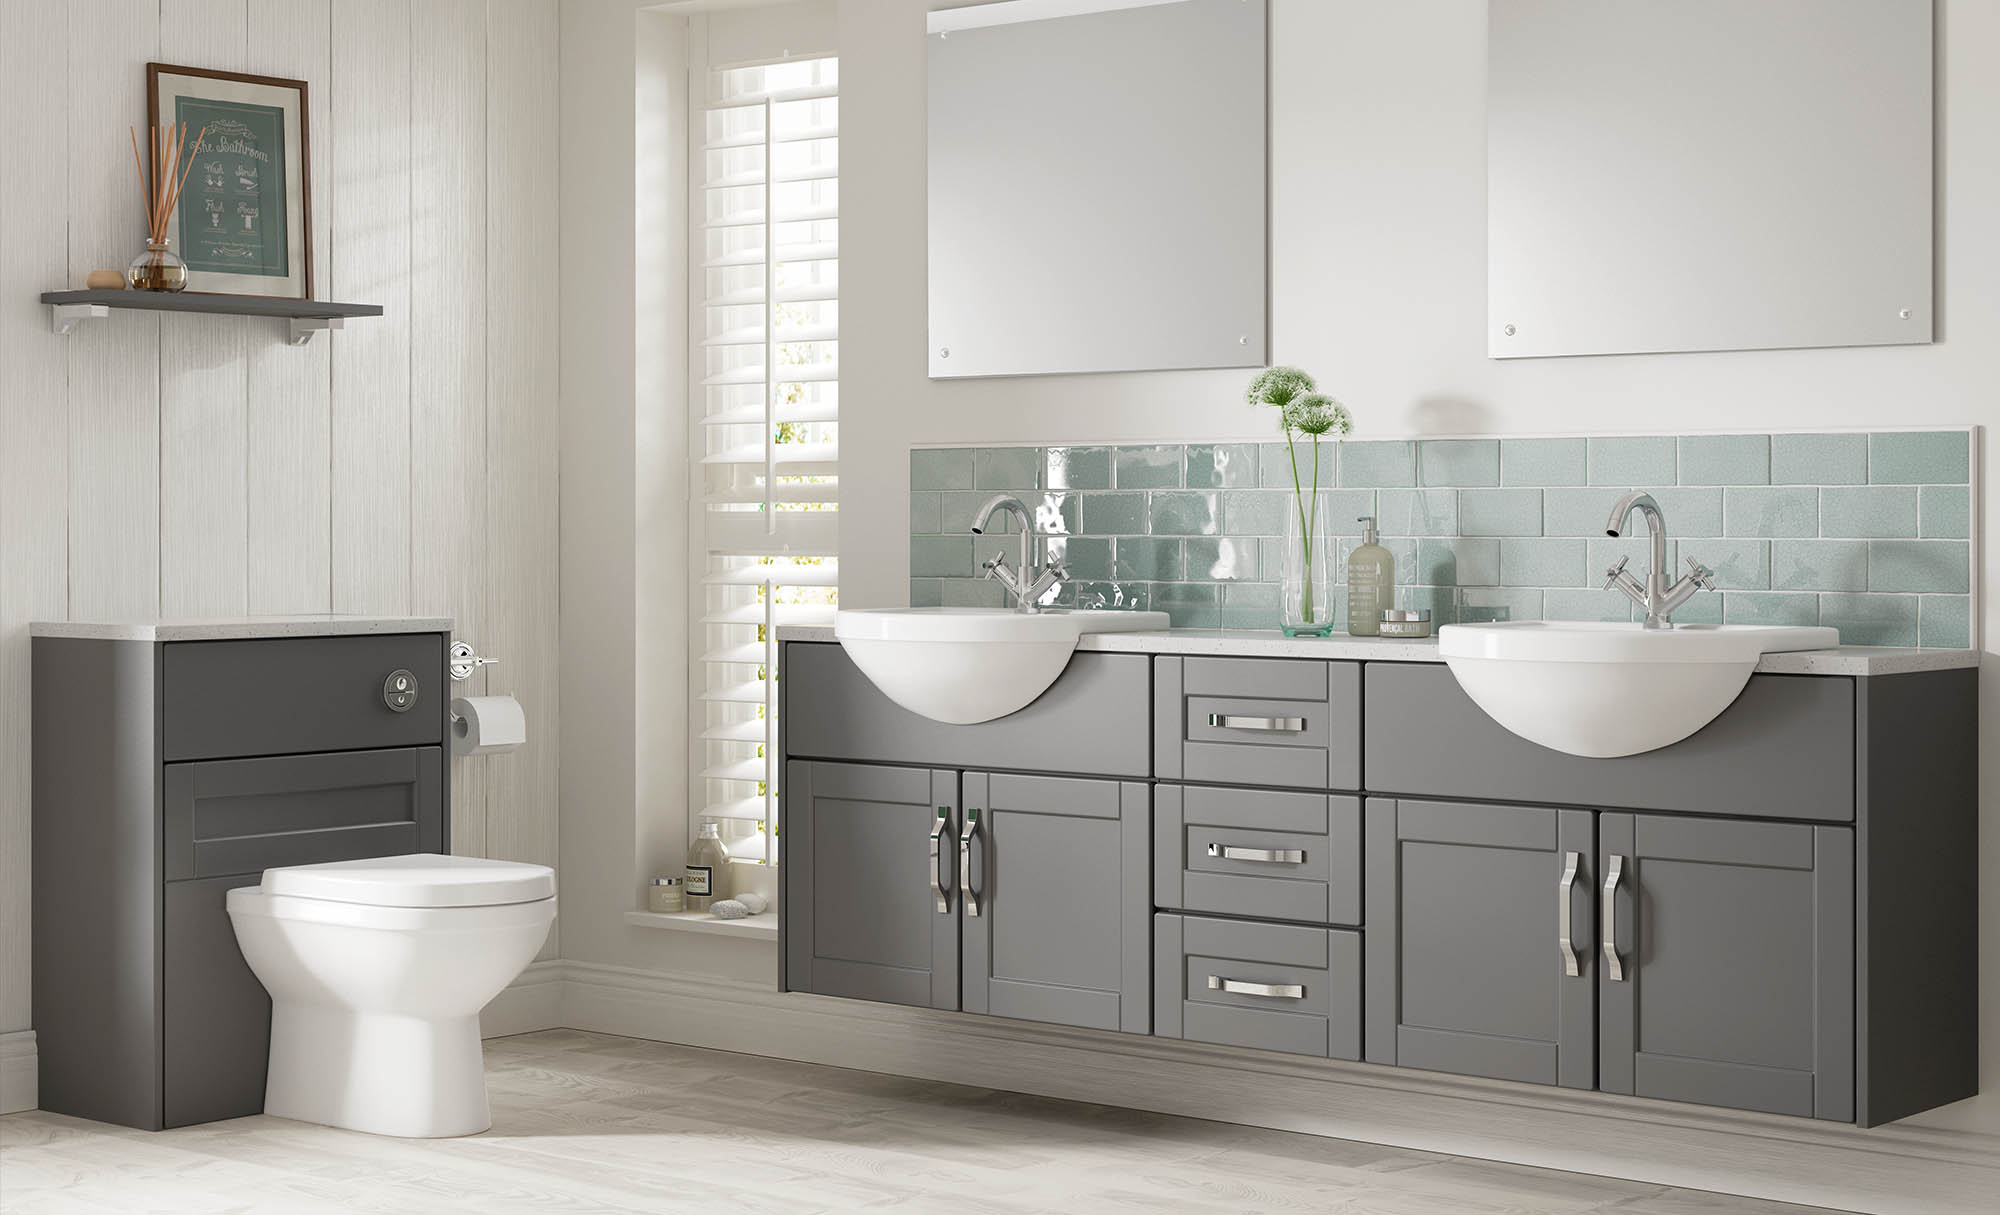 Gaddesby Bathrooms Cologne Dust Grey